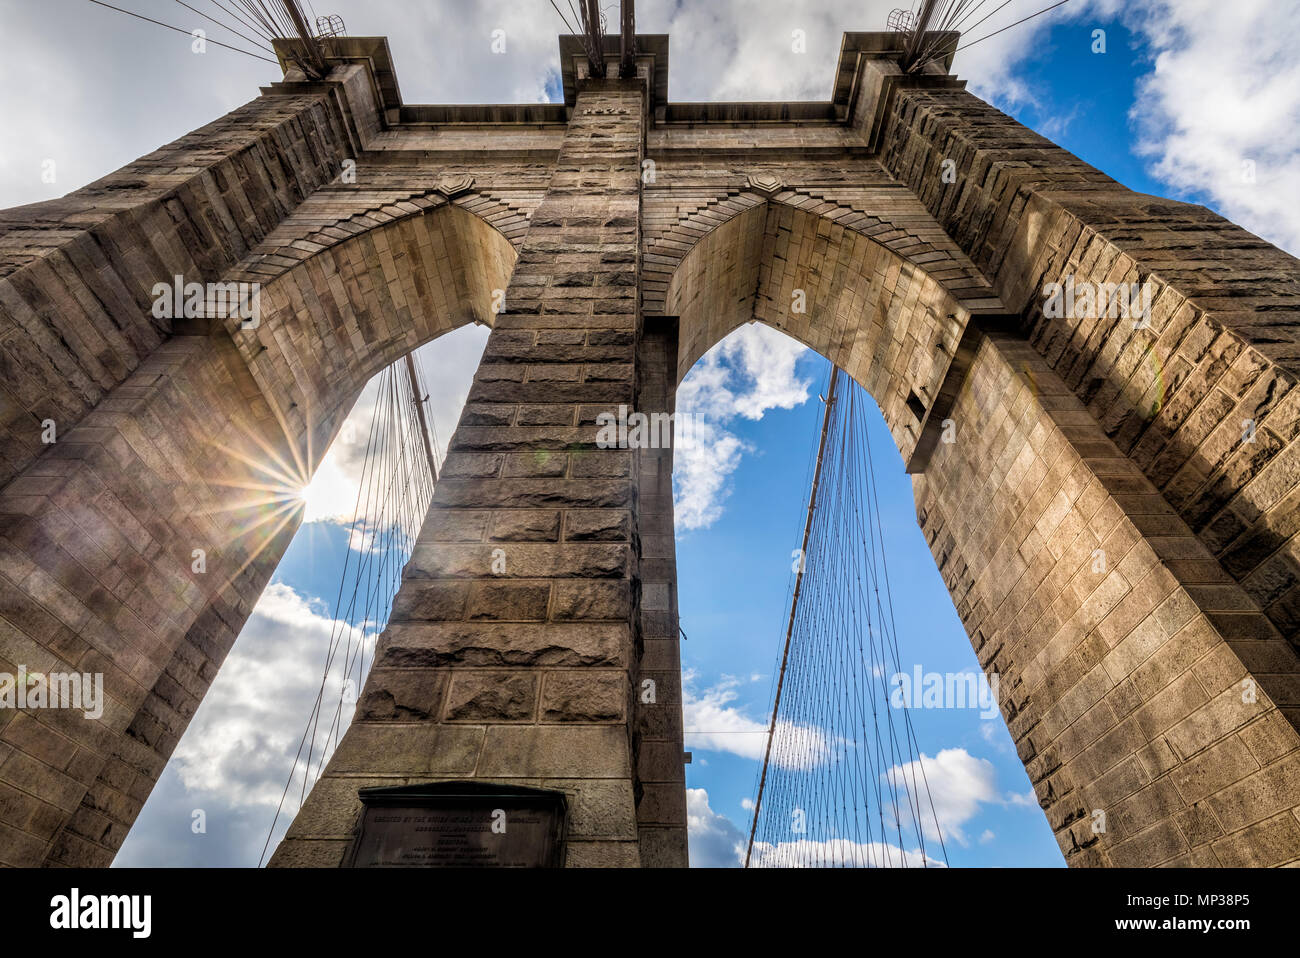 The massive arches of the Brooklyn Bridge in New York City, USA. - Stock Image